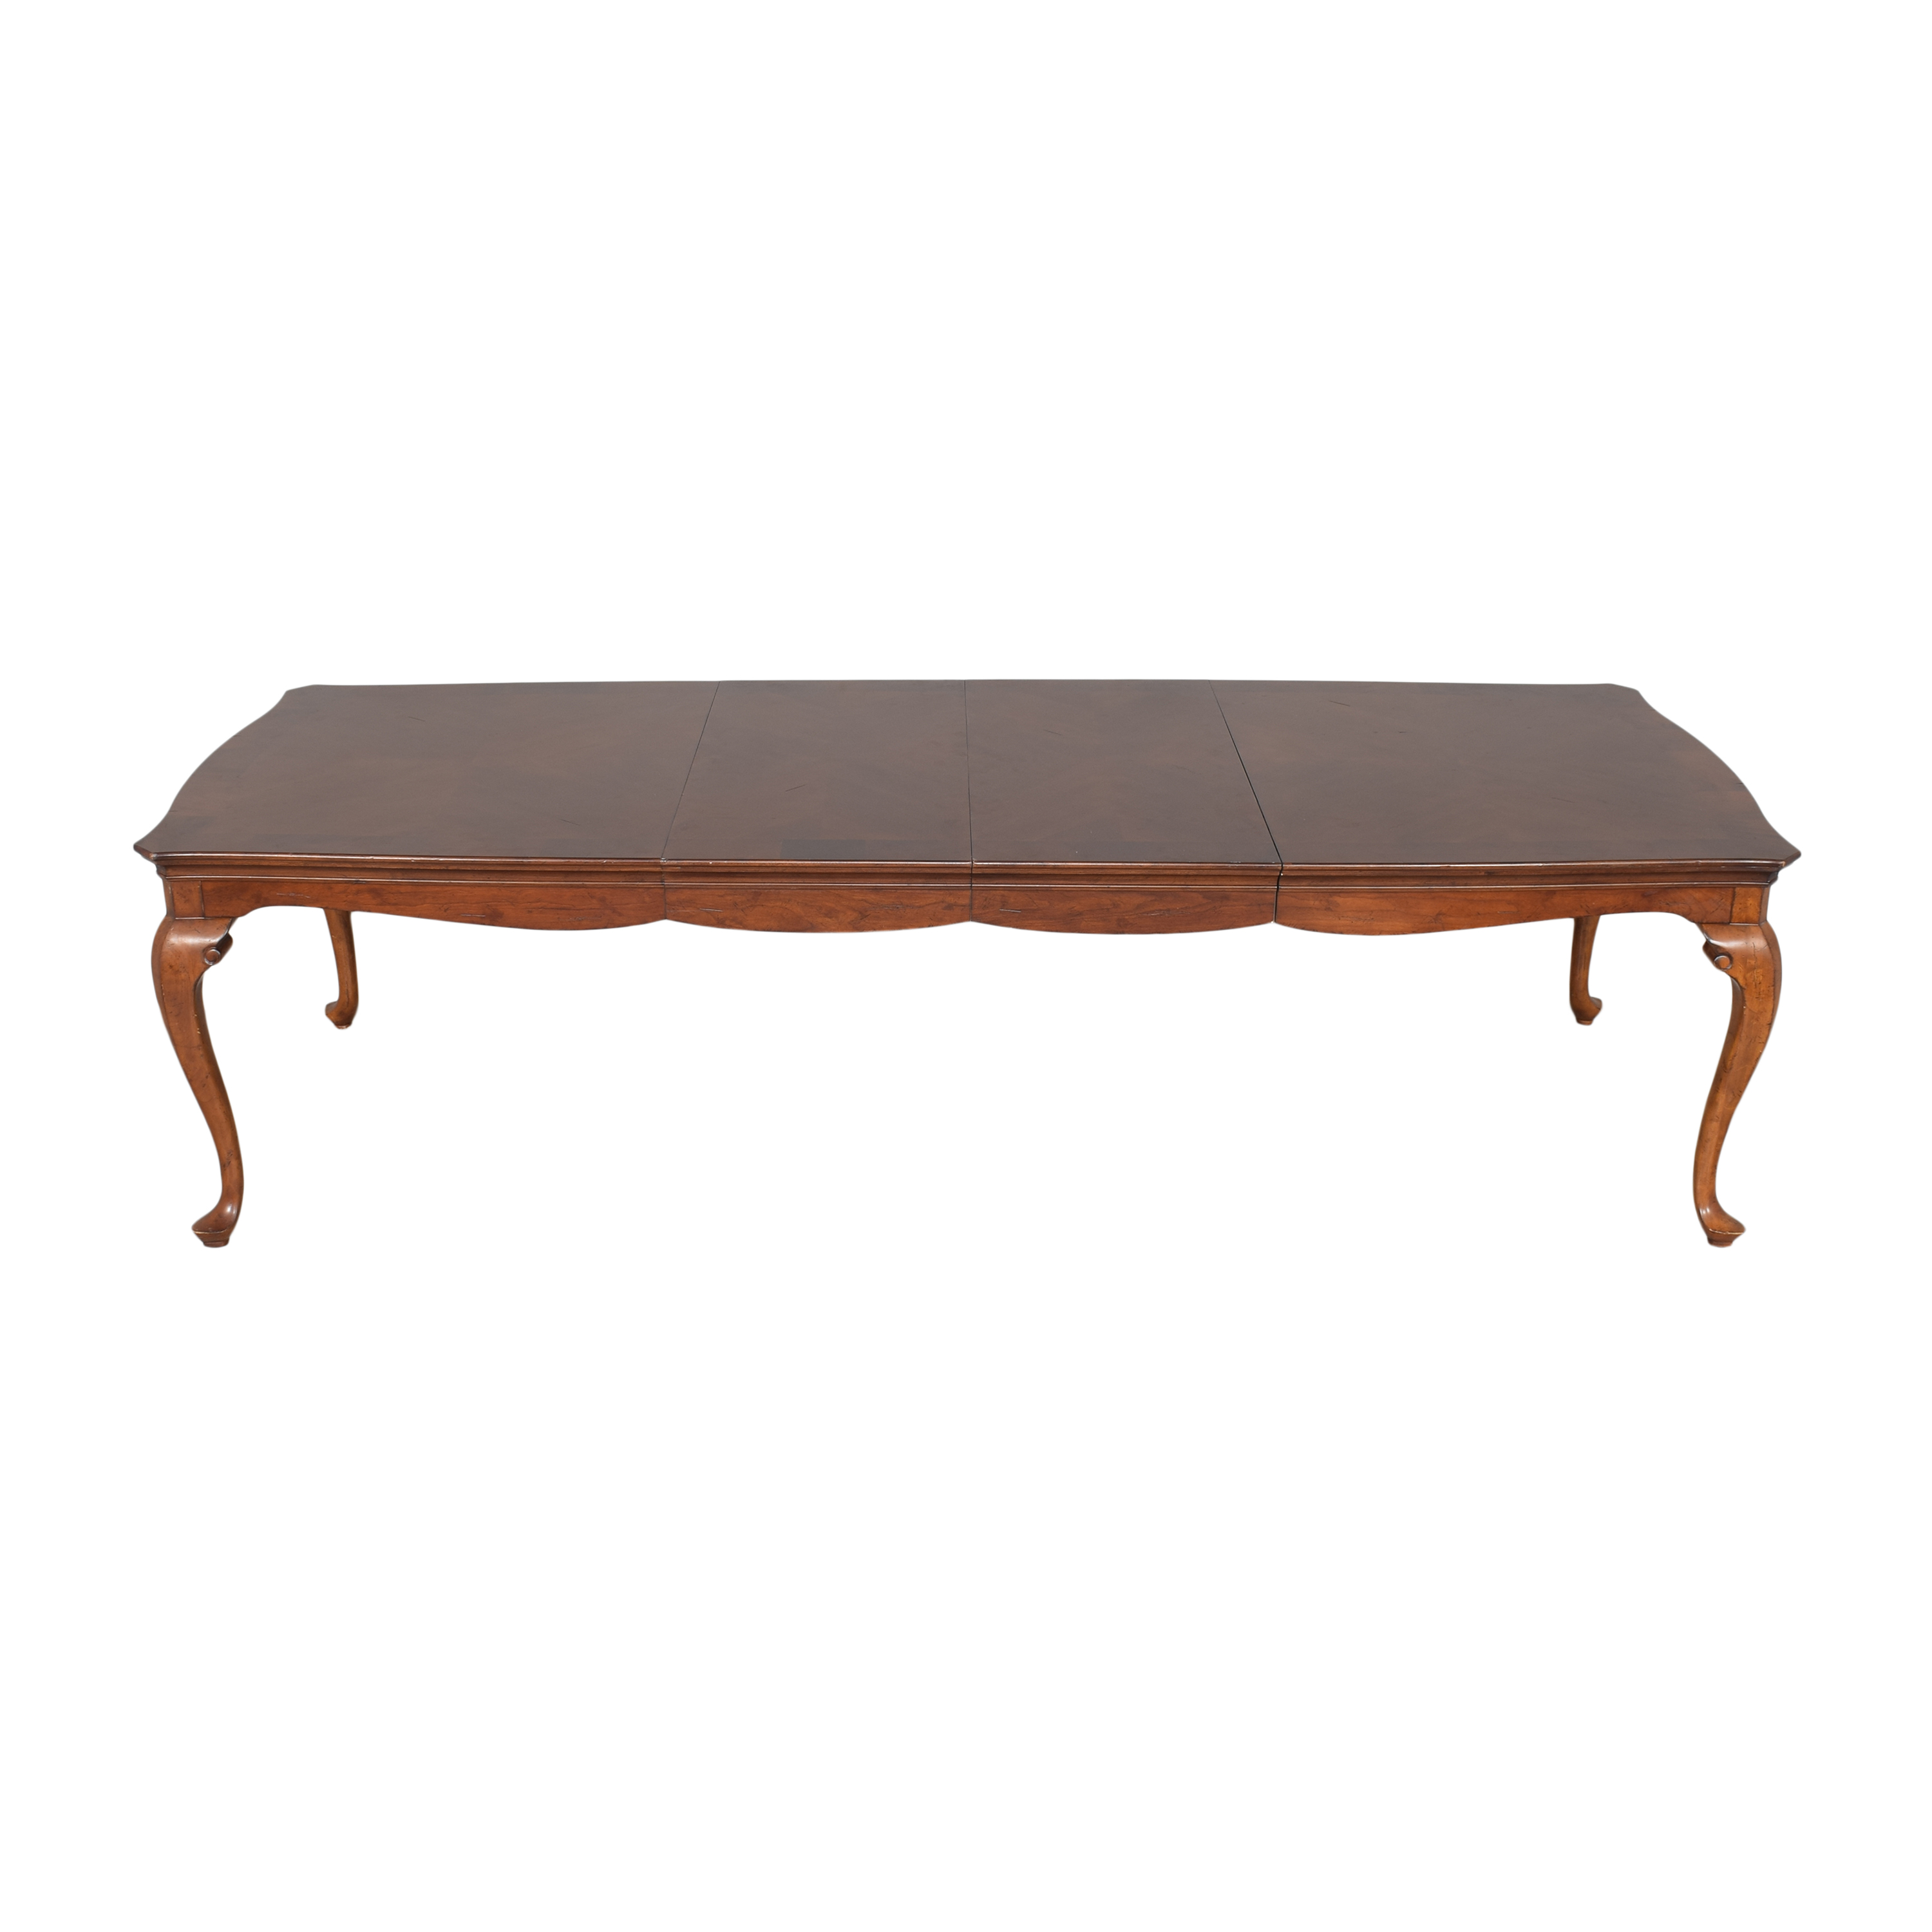 buy Thomasville Thomasville Extendable Dining Table online